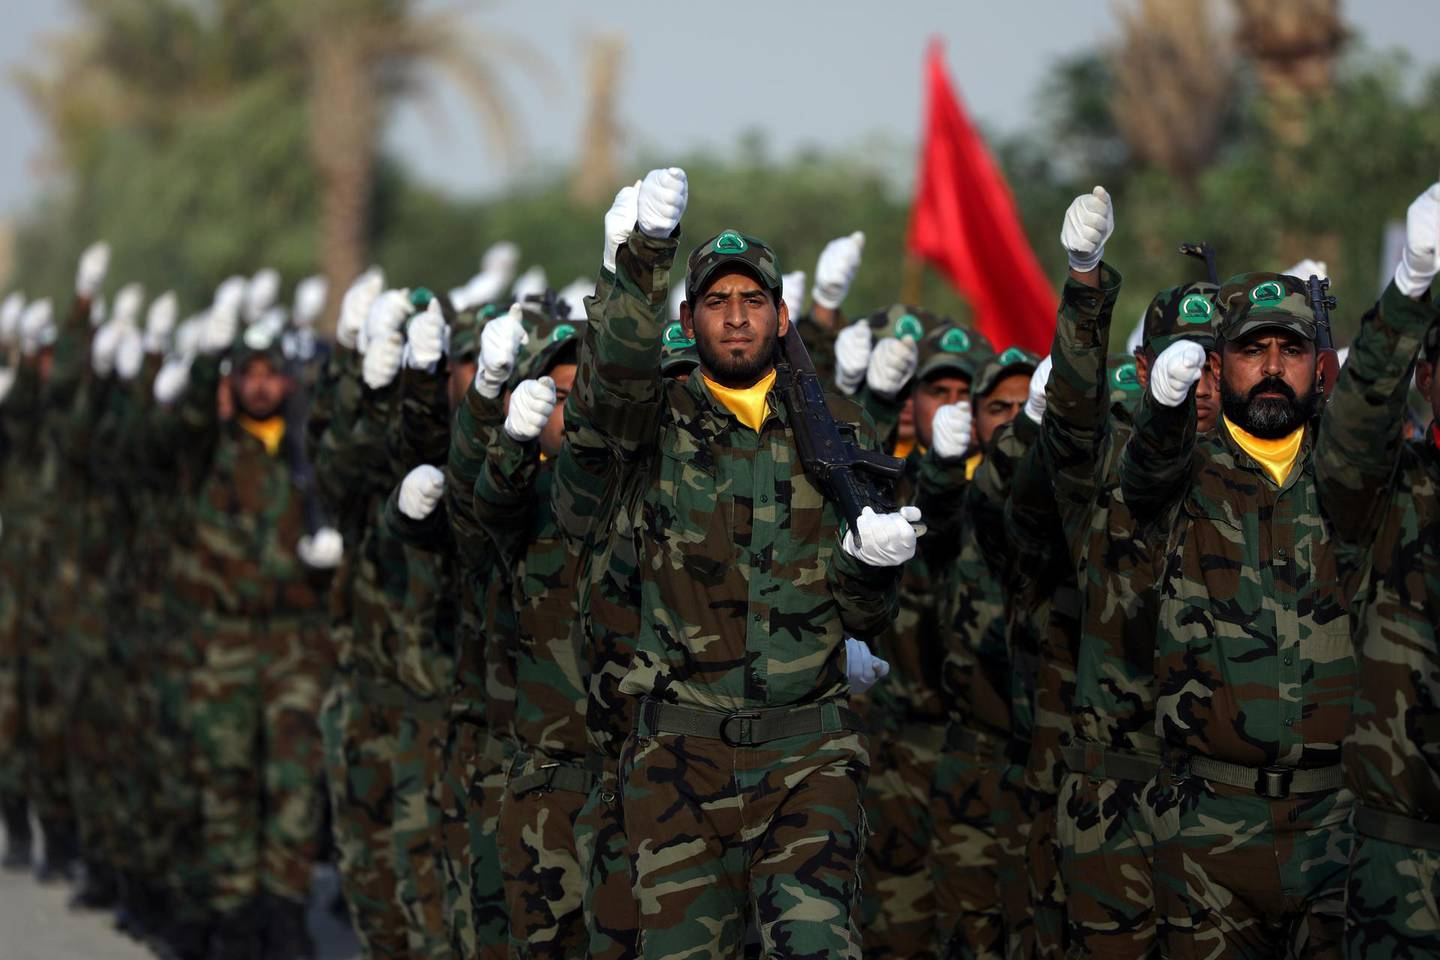 Members of the paramilitary Popular Mobilisation Forces (PMF) take part in their graduation ceremony at a military camp in Kerbala, Iraq August 30, 2019. REUTERS/Abdullah Dhiaa Al-Deen